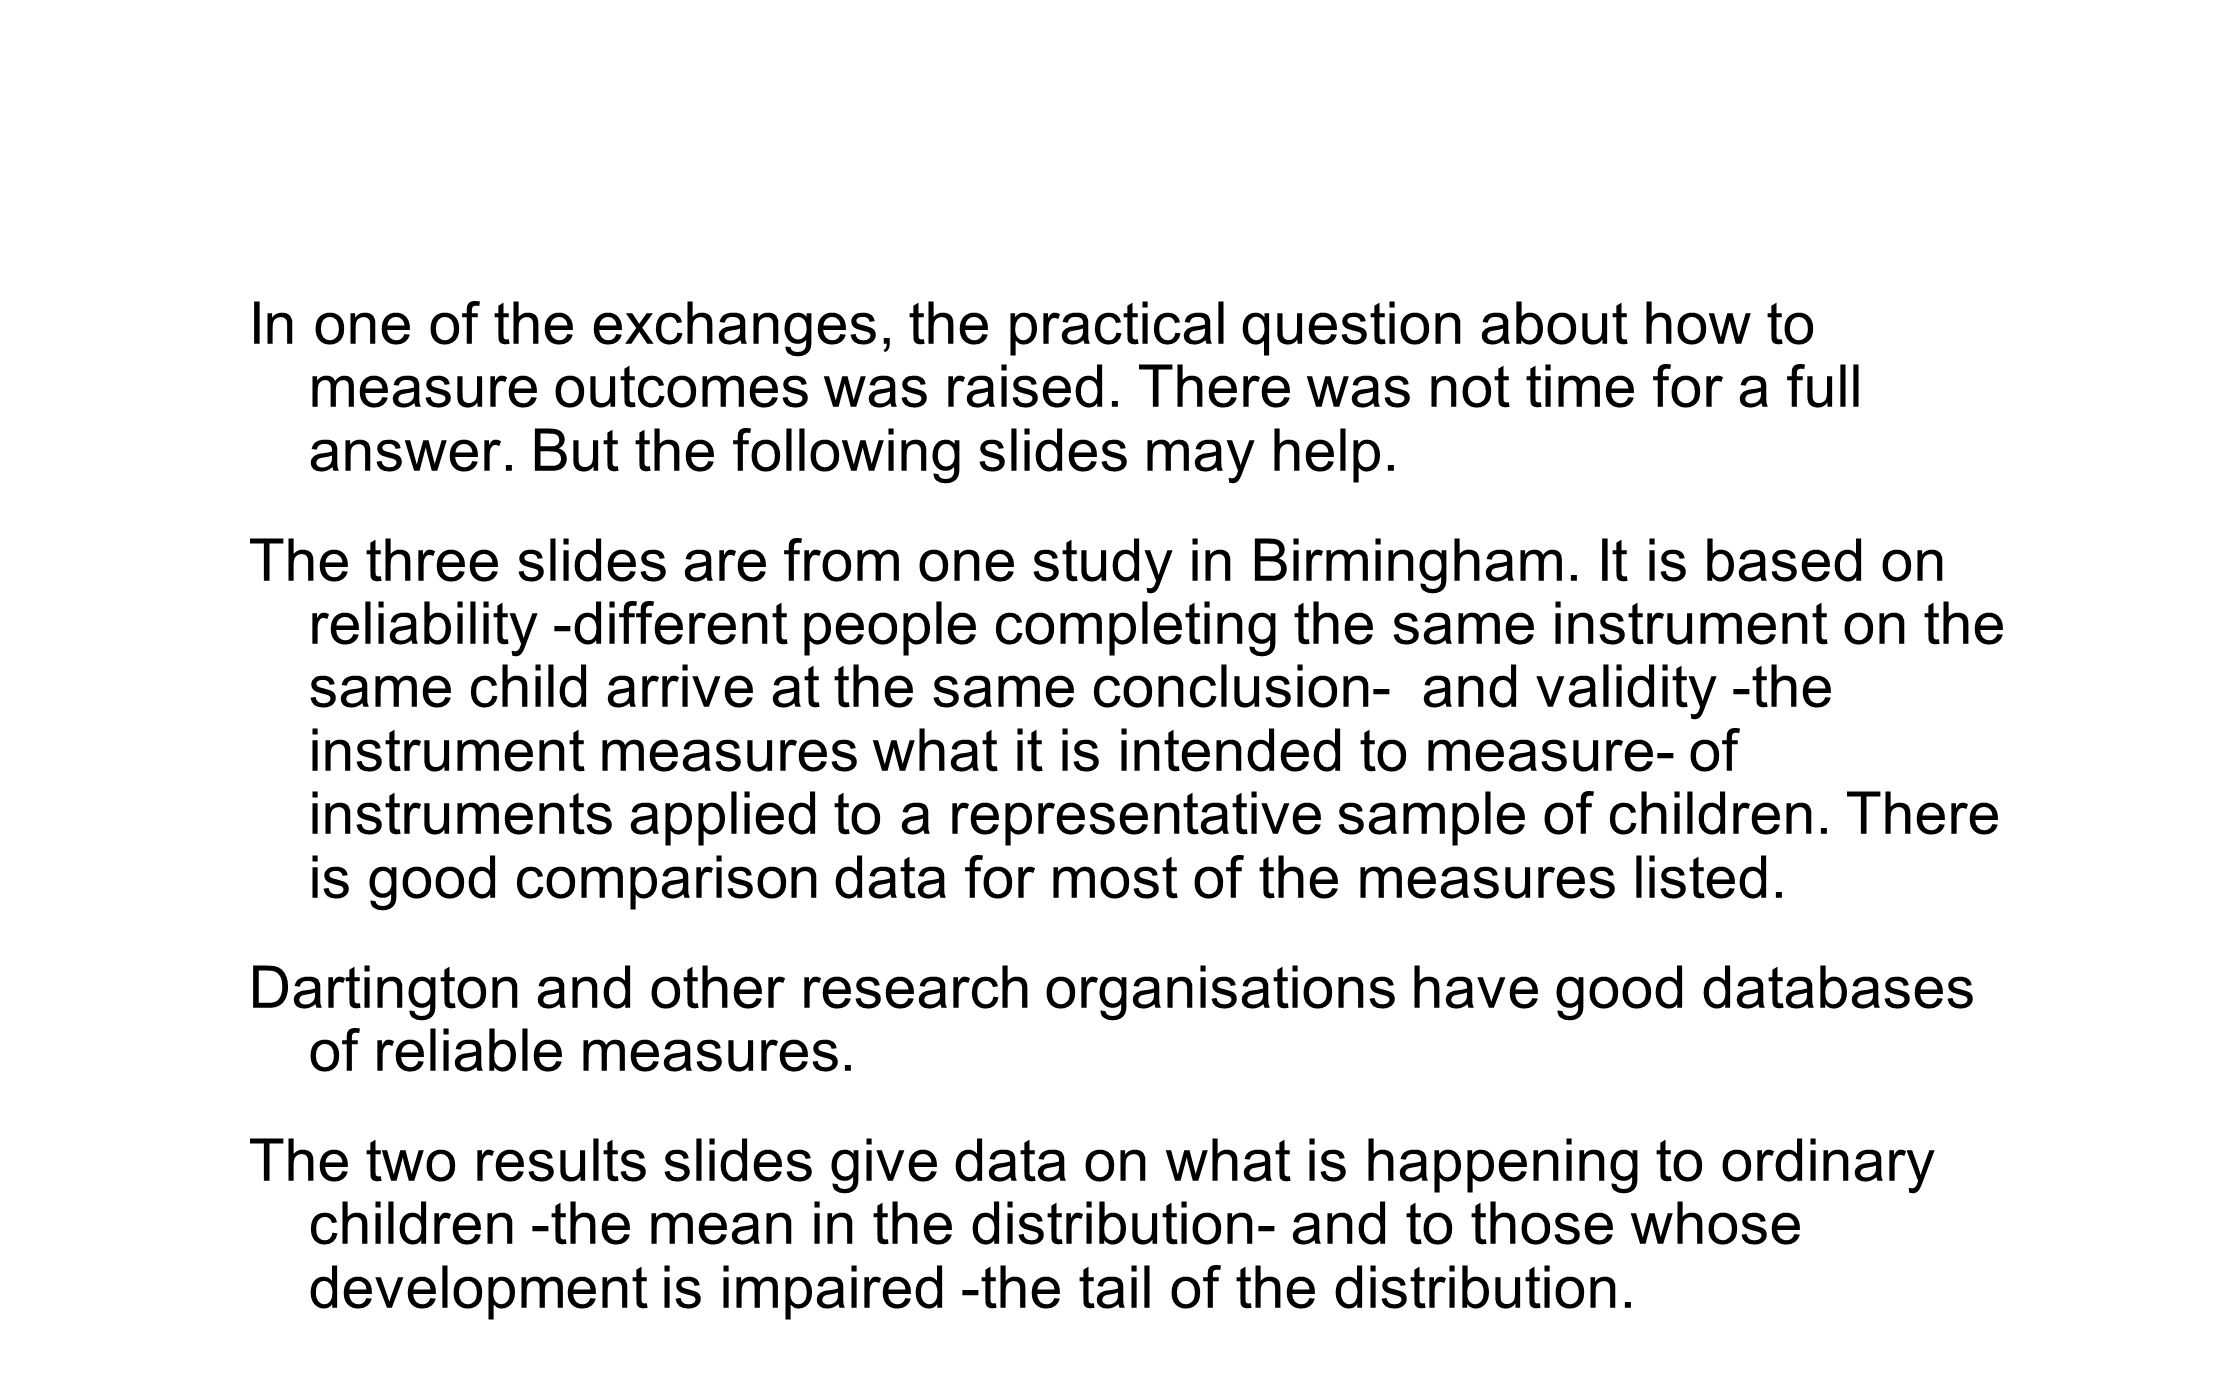 In one of the exchanges, the practical question about how to measure outcomes was raised.